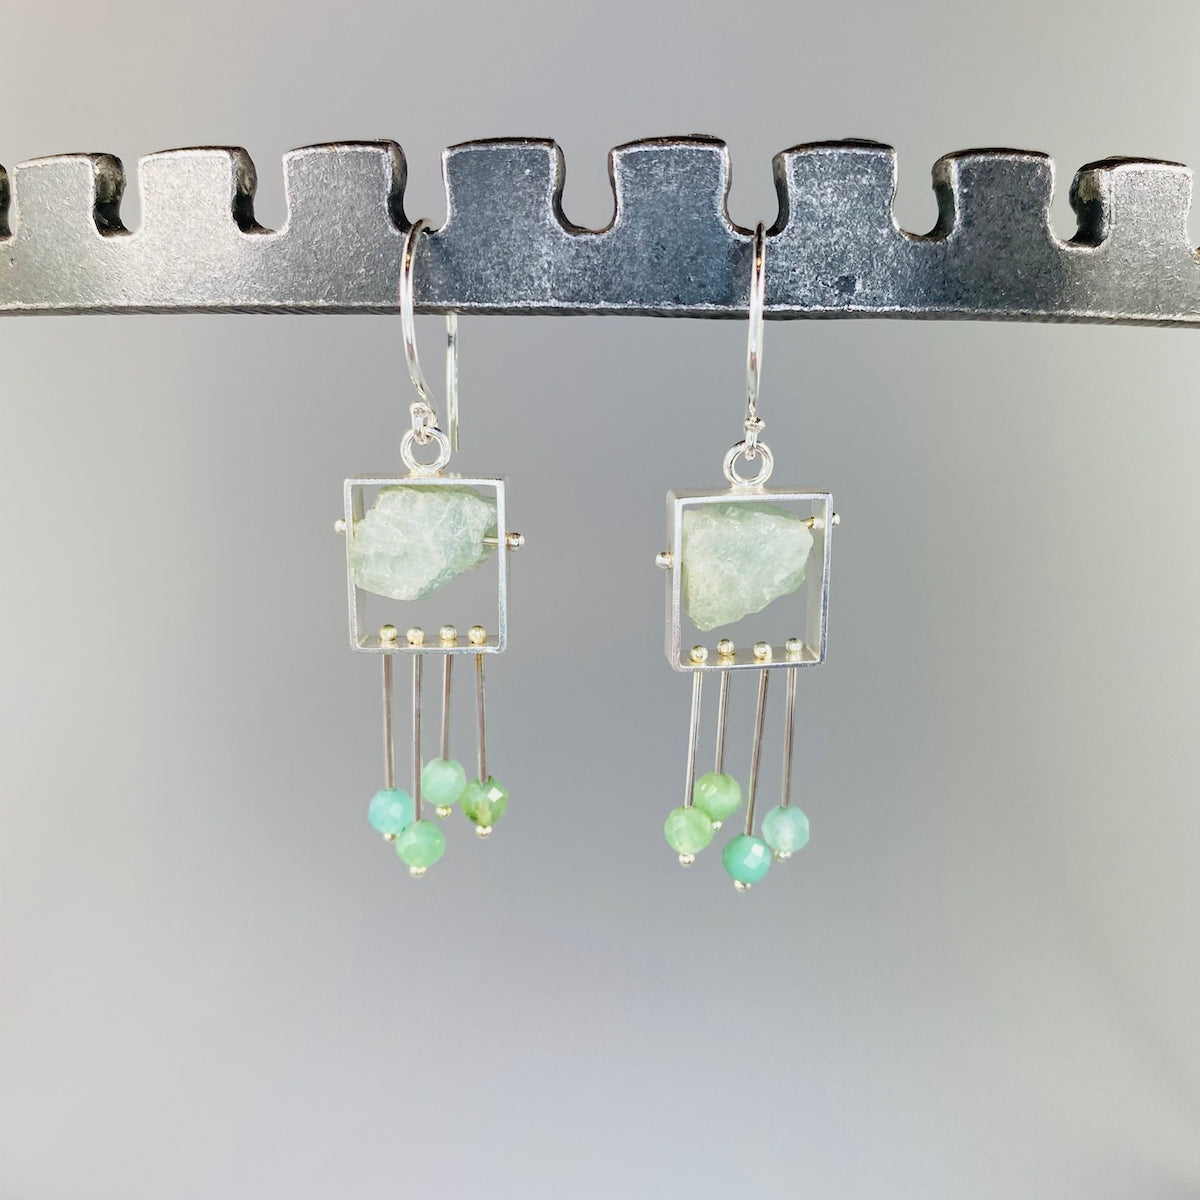 Aquamarine Earrings with Chrysoprase Fringe - Heart of the Home PA